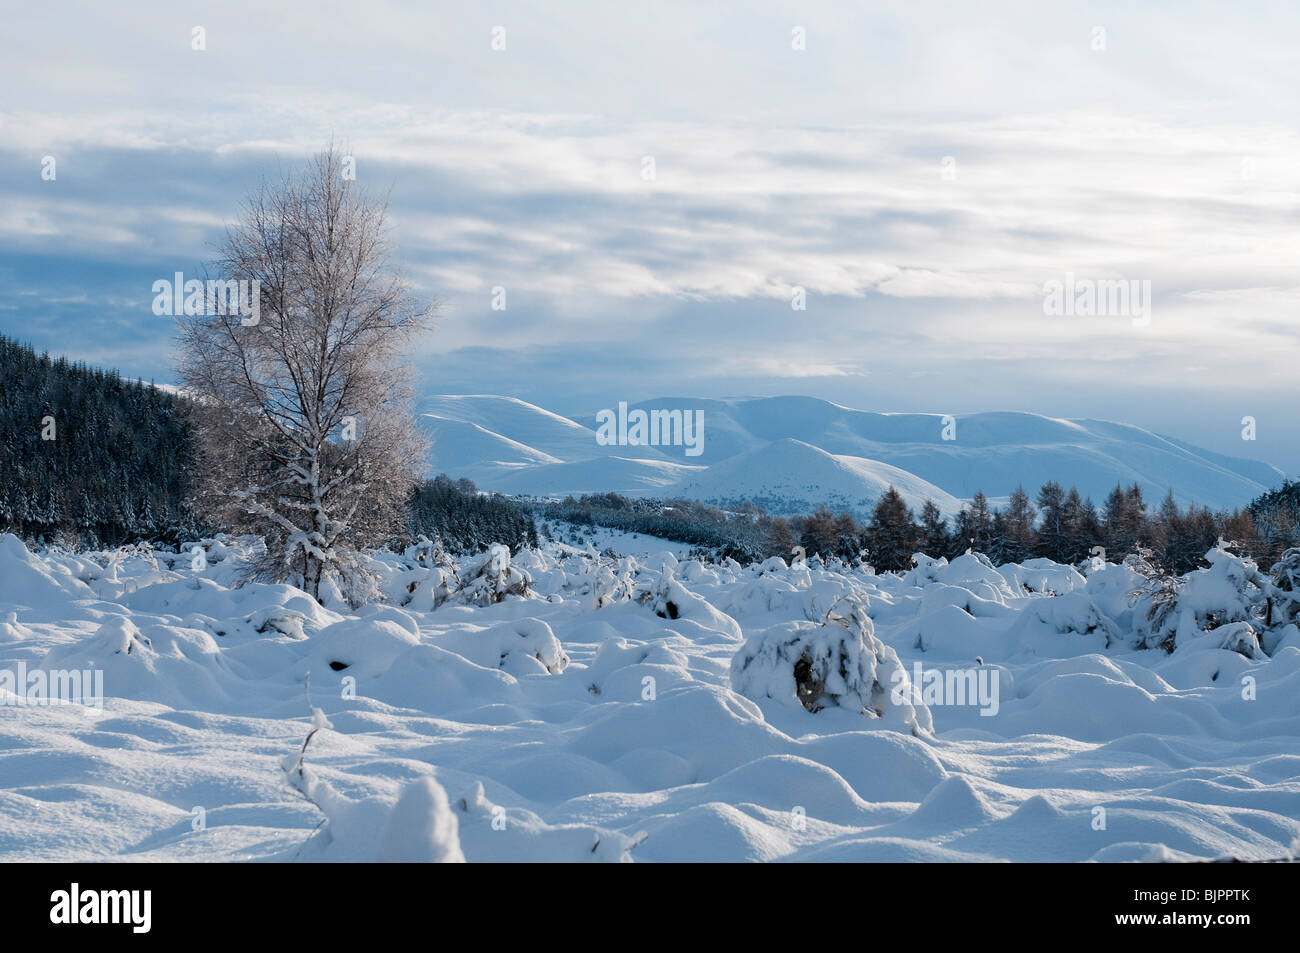 View of the snow covered Cairngorm mountains with a birch tree in the foreground, Scotland - Stock Image